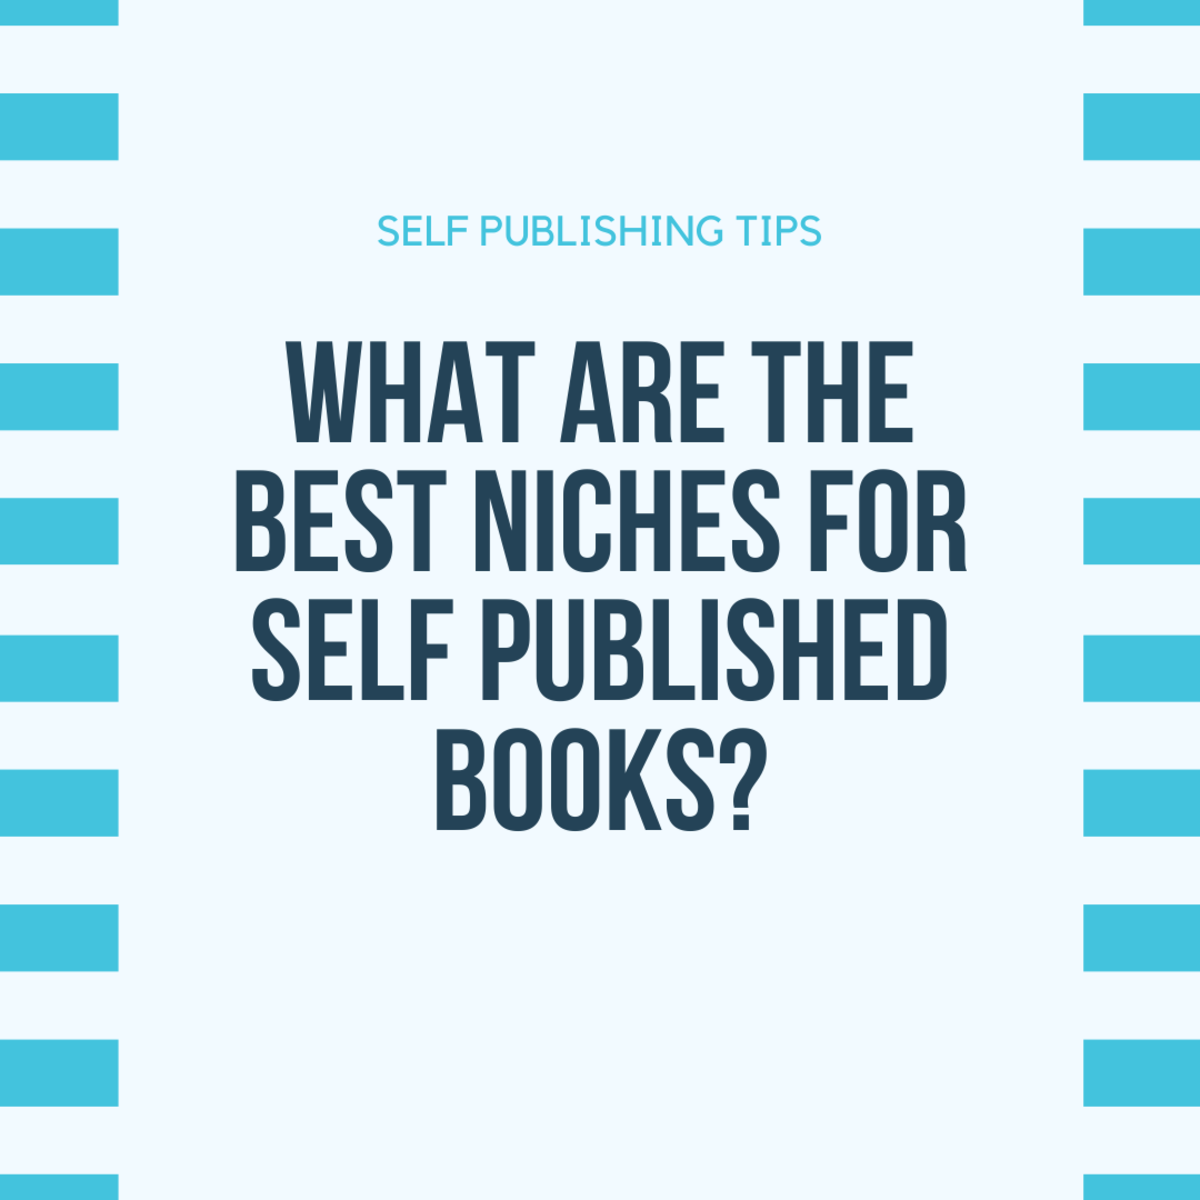 What Are the Best Niches for Self Published Books?